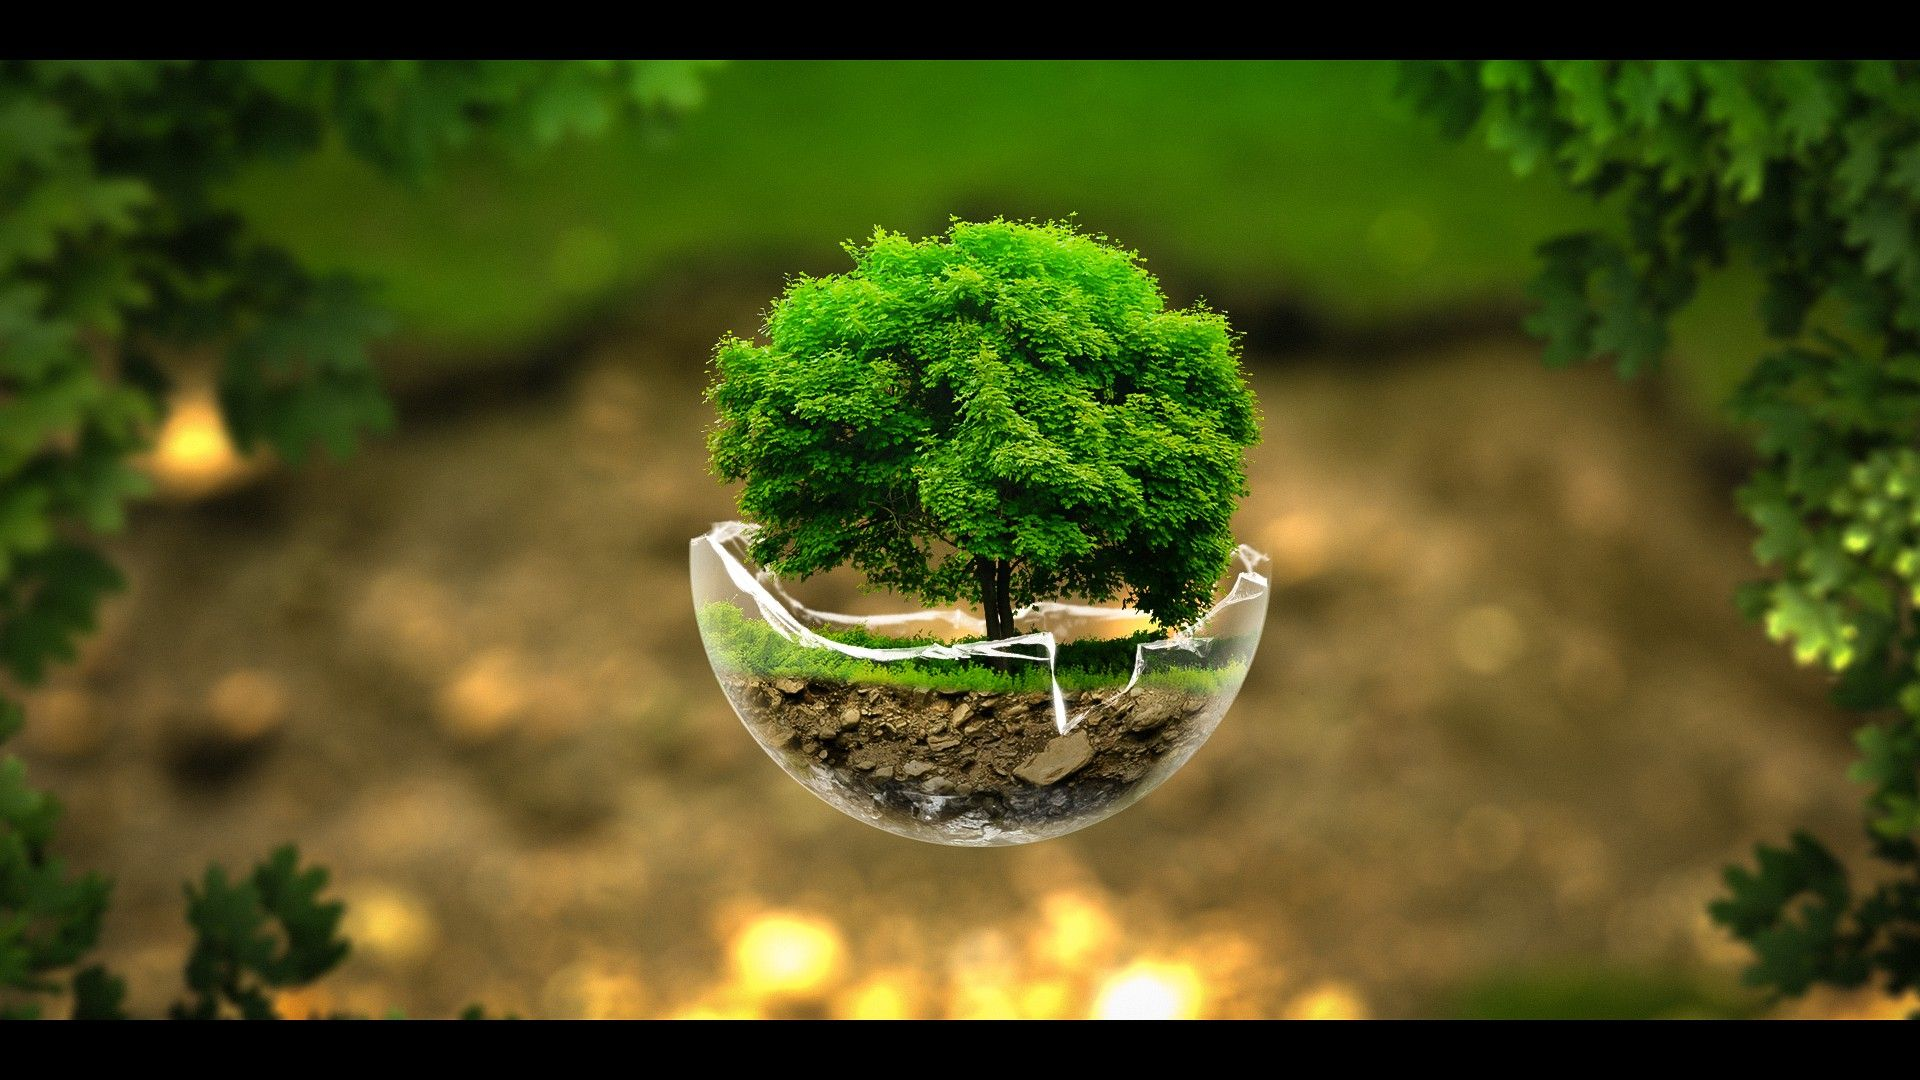 Surreal Nature Sphere HD Wallpaper FullHDWpp   Full HD Wallpapers 1920x1080